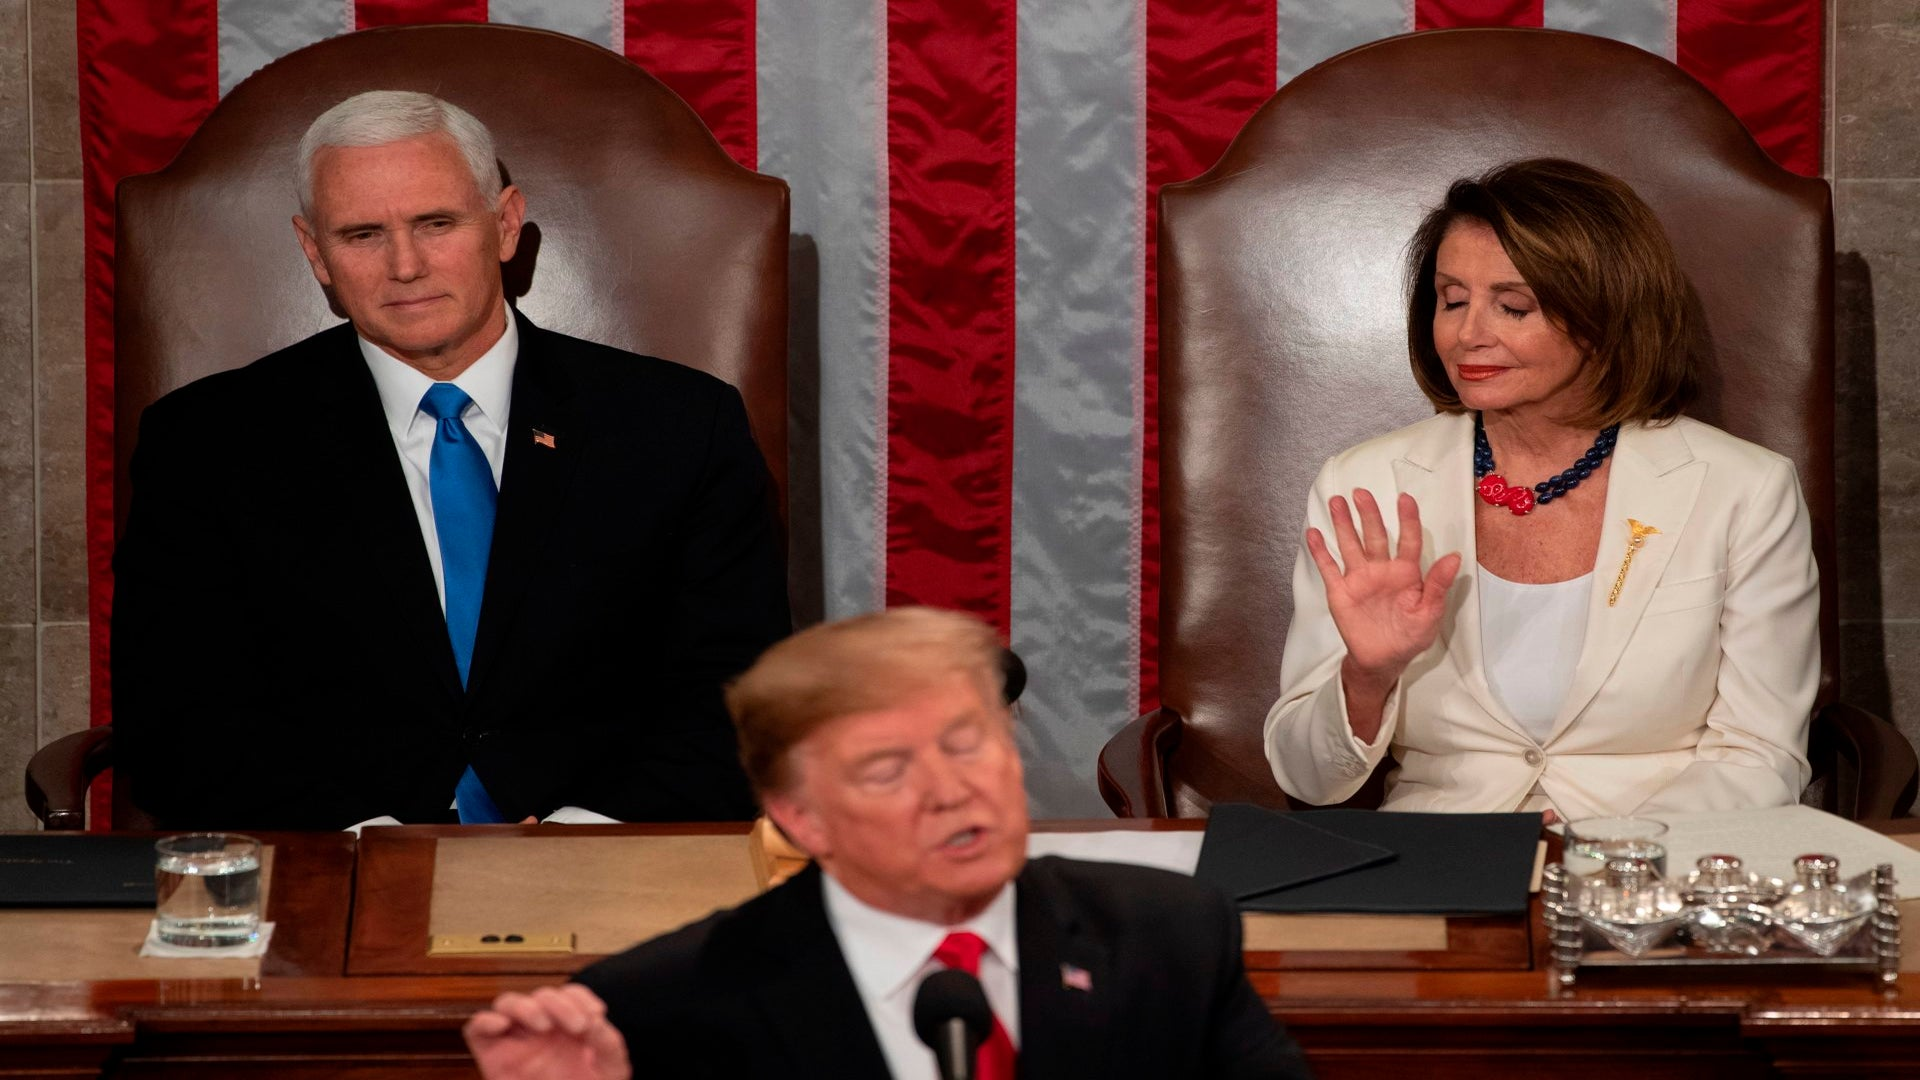 Trump Talks Bipartisanship, Criminal Justice And, Of Course, The Border Wall During State Of The Union